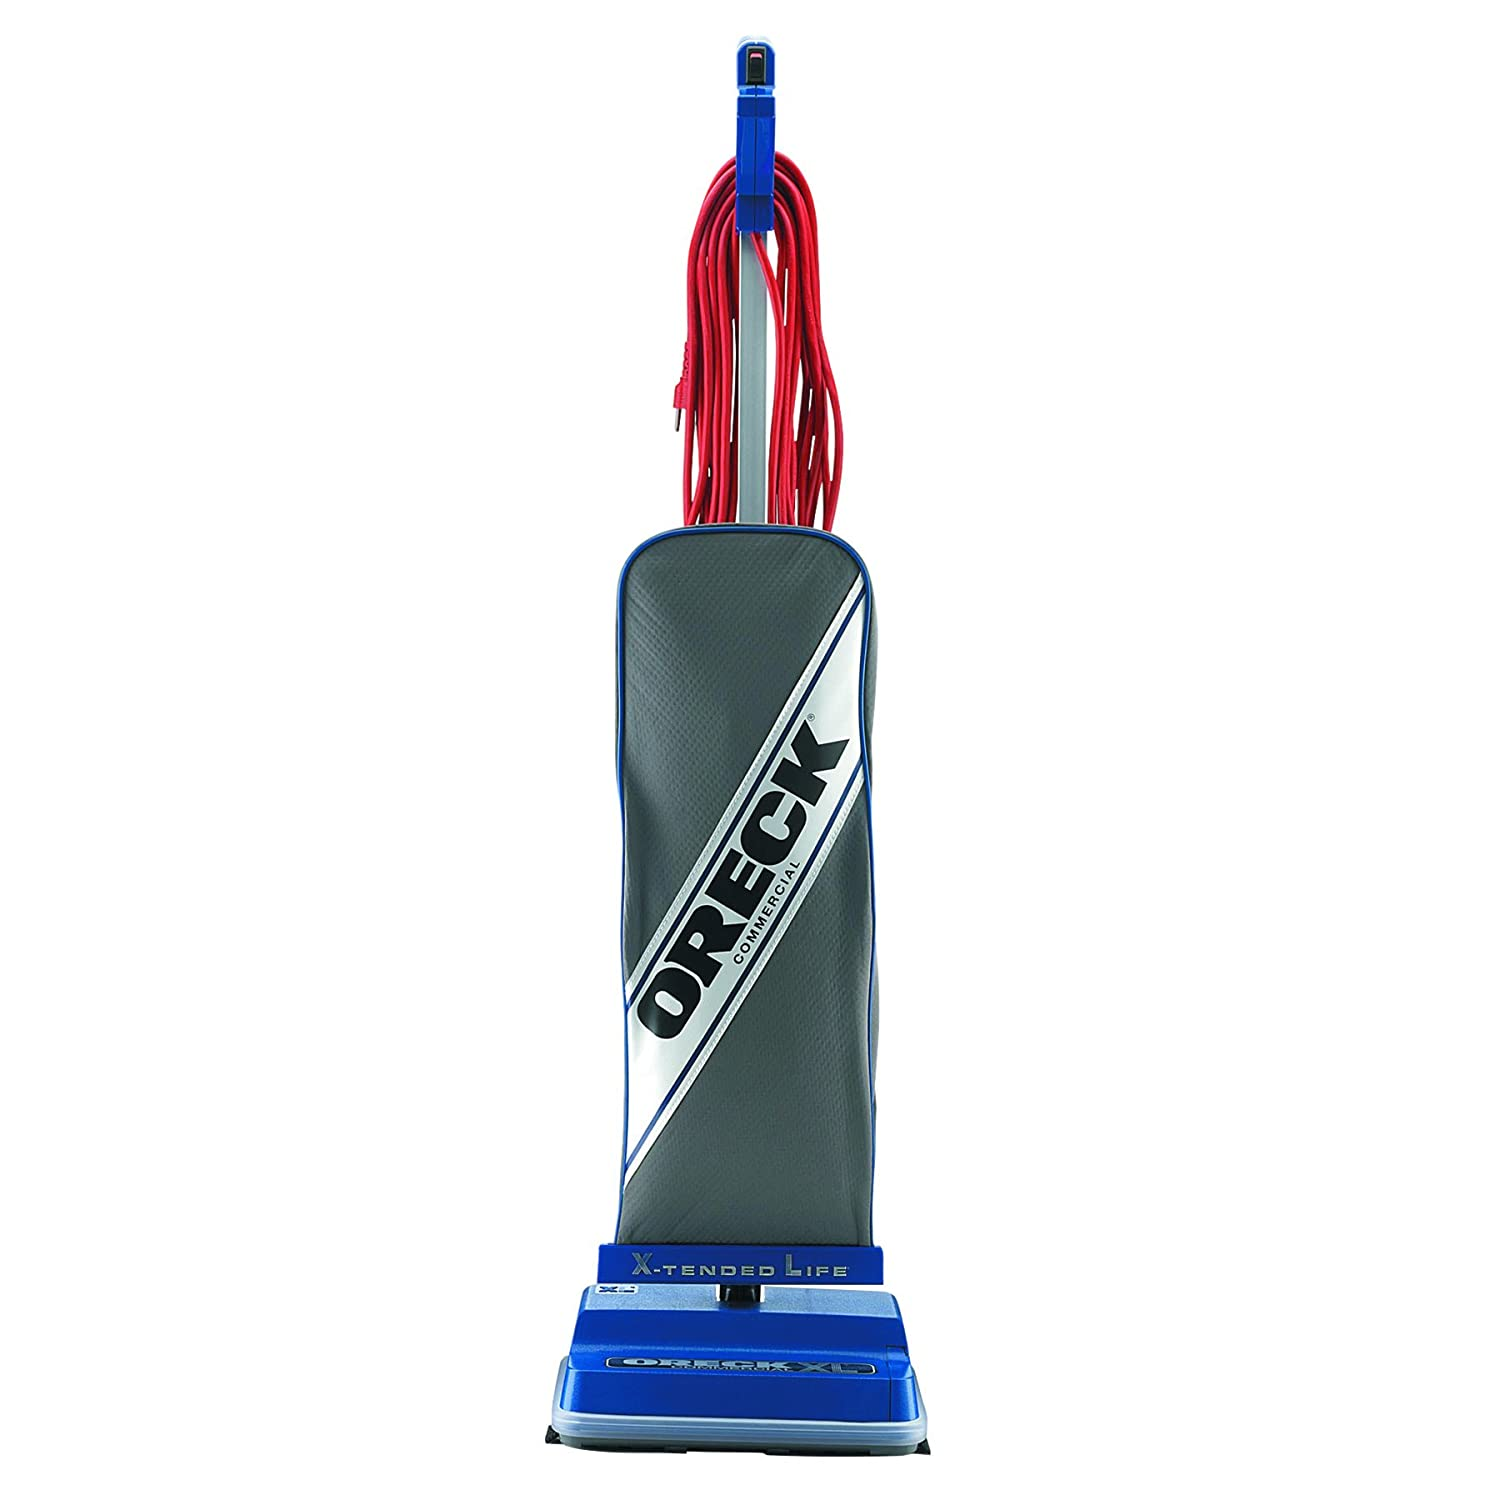 Oreck Commercial XL2100RHS XL Commercial Upright Vacuum